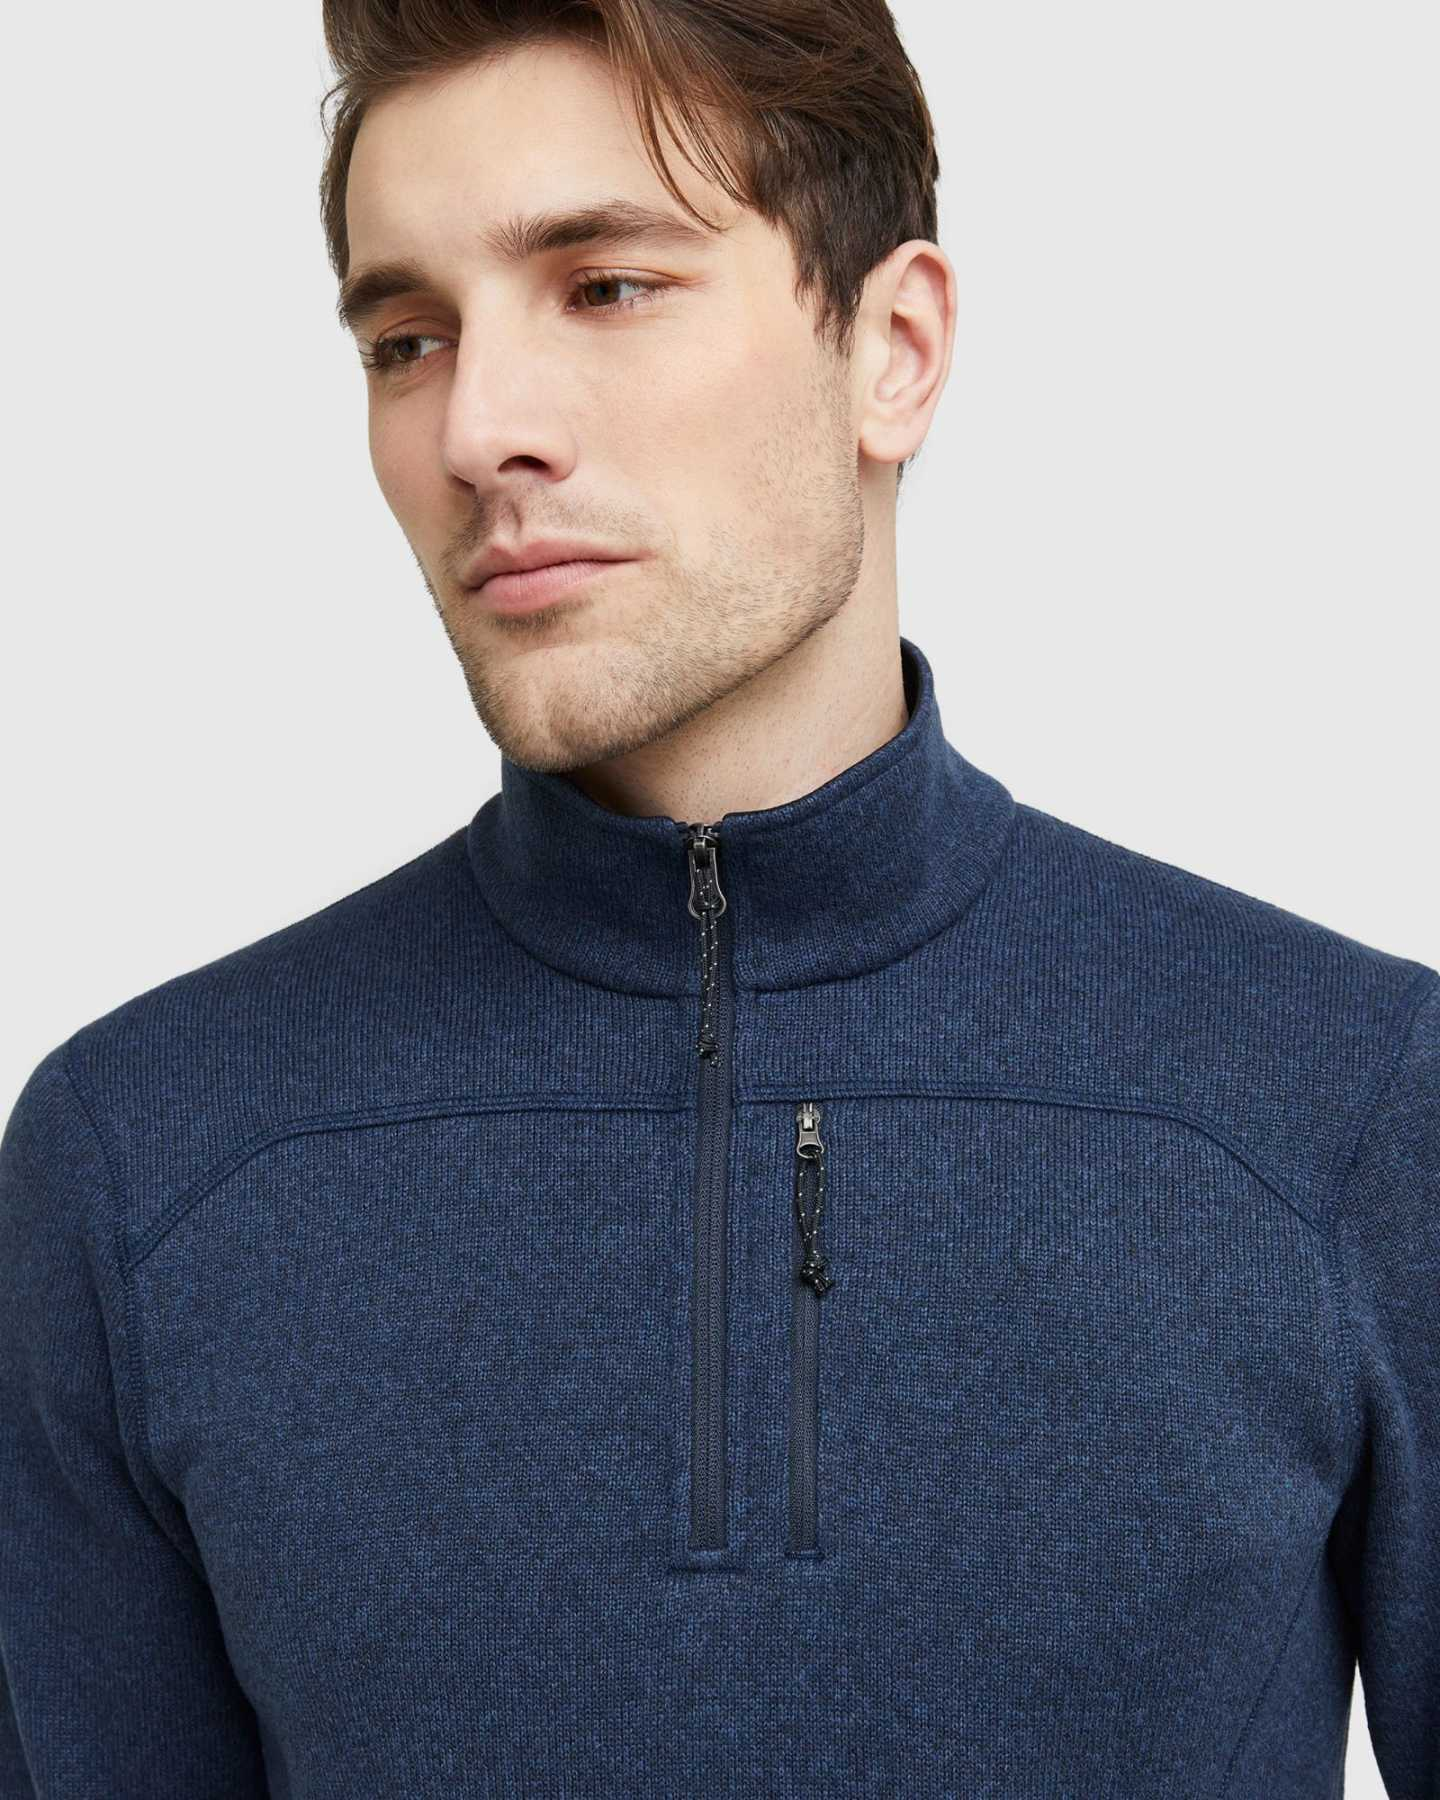 Quarter Zip Sweater Fleece Jacket - 13649834573935